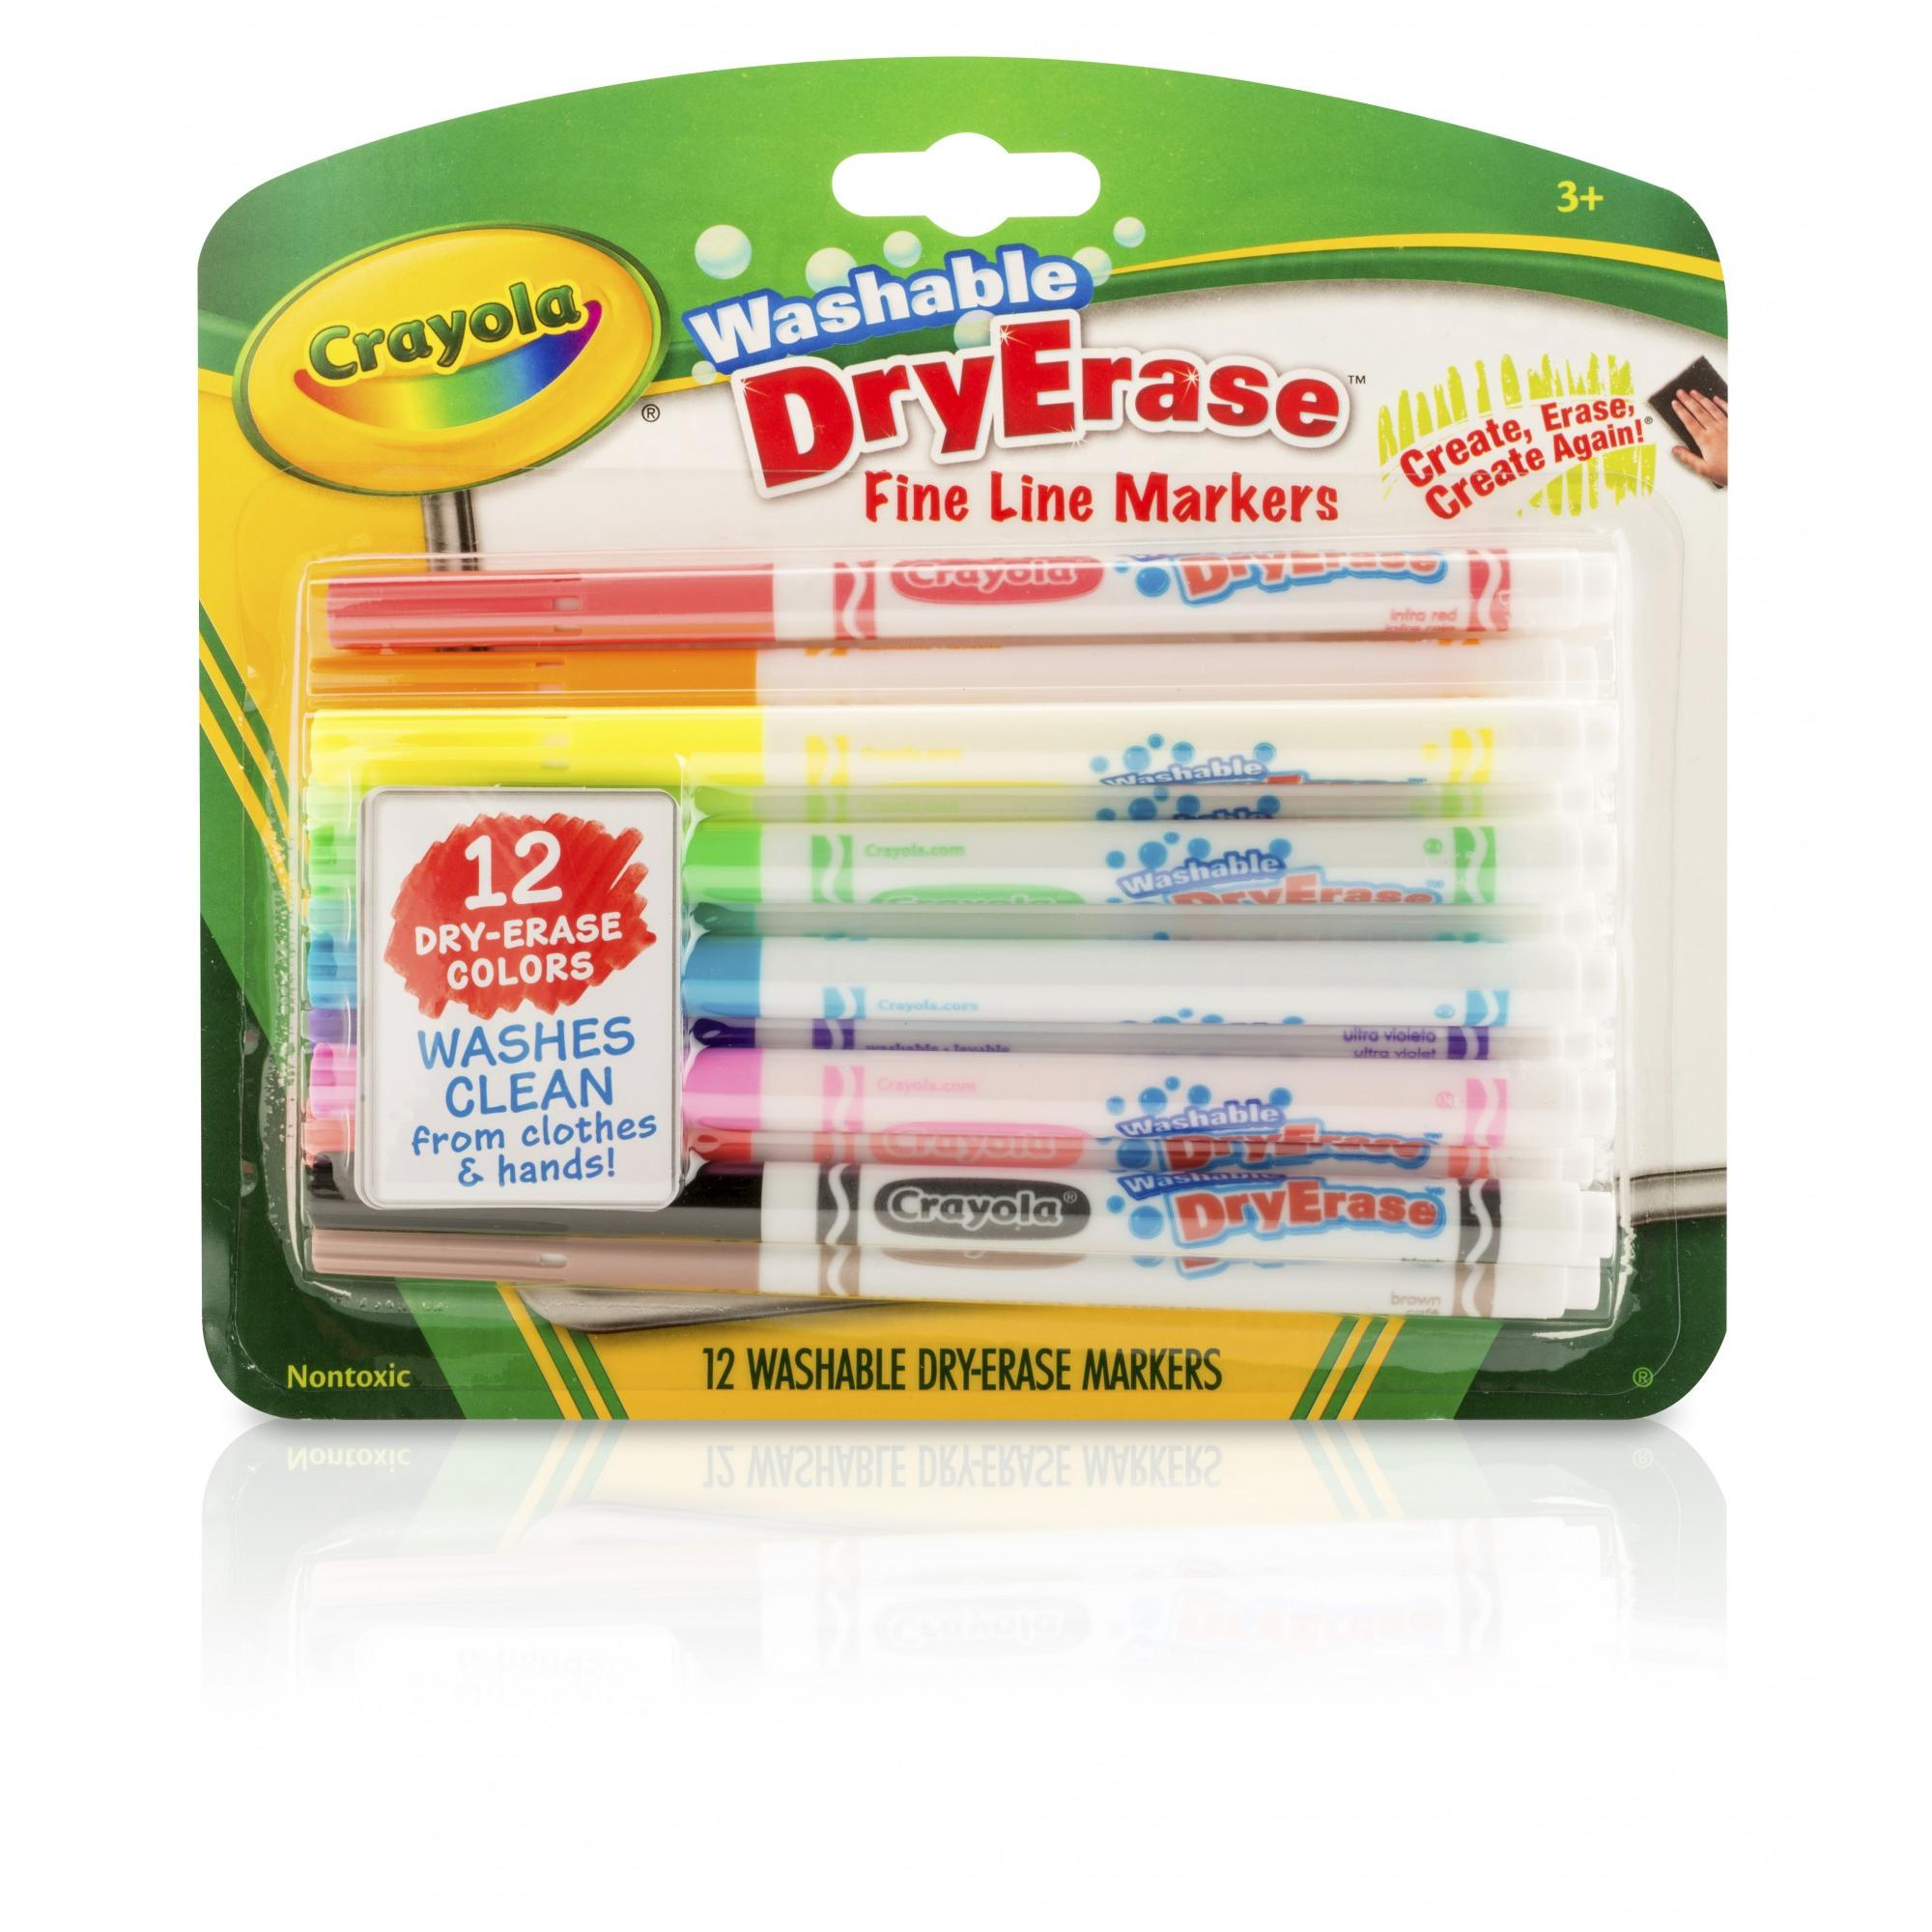 Crayola Washable Dry Erase Fineline Markers, 12 Count by Crayola, LLC